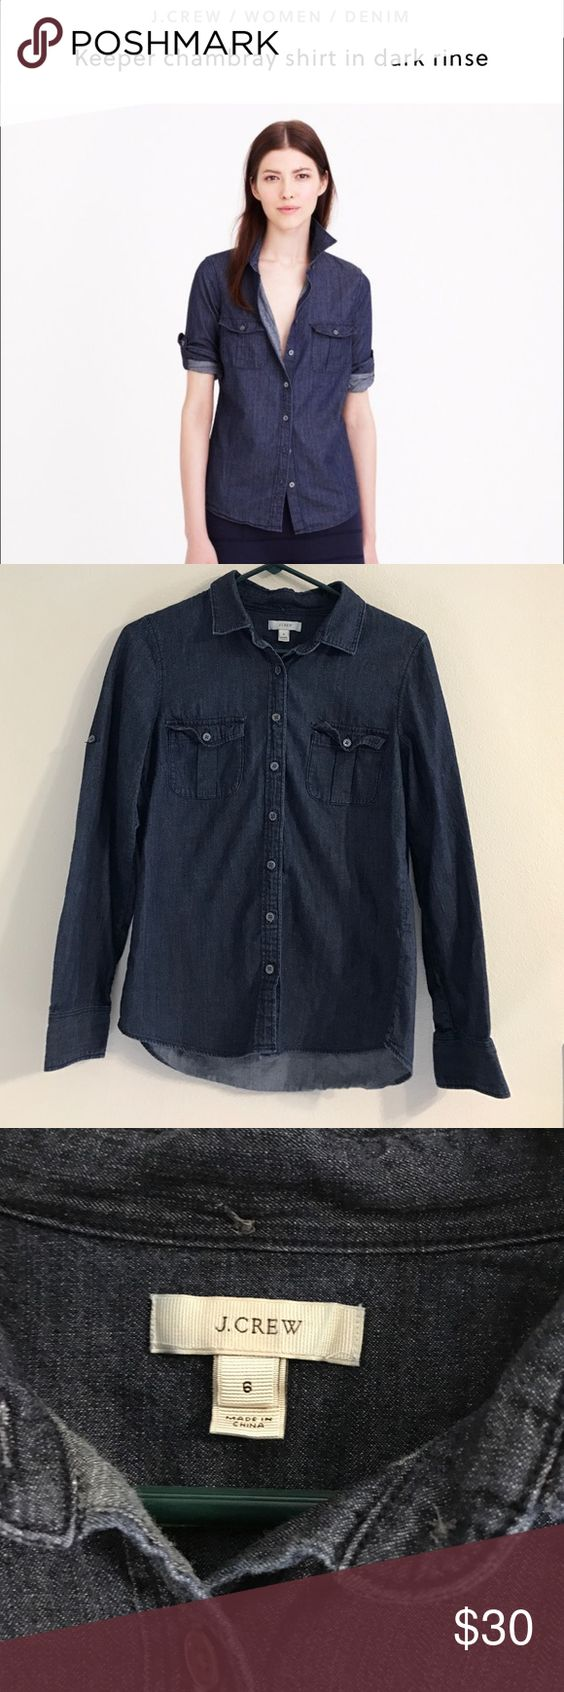 J. Crew Keeper Chambray In Dark Rinse J.Crew keeper chambray in dark rinse. Soft, classic button down. Size 6 J. Crew Tops Button Down Shirts